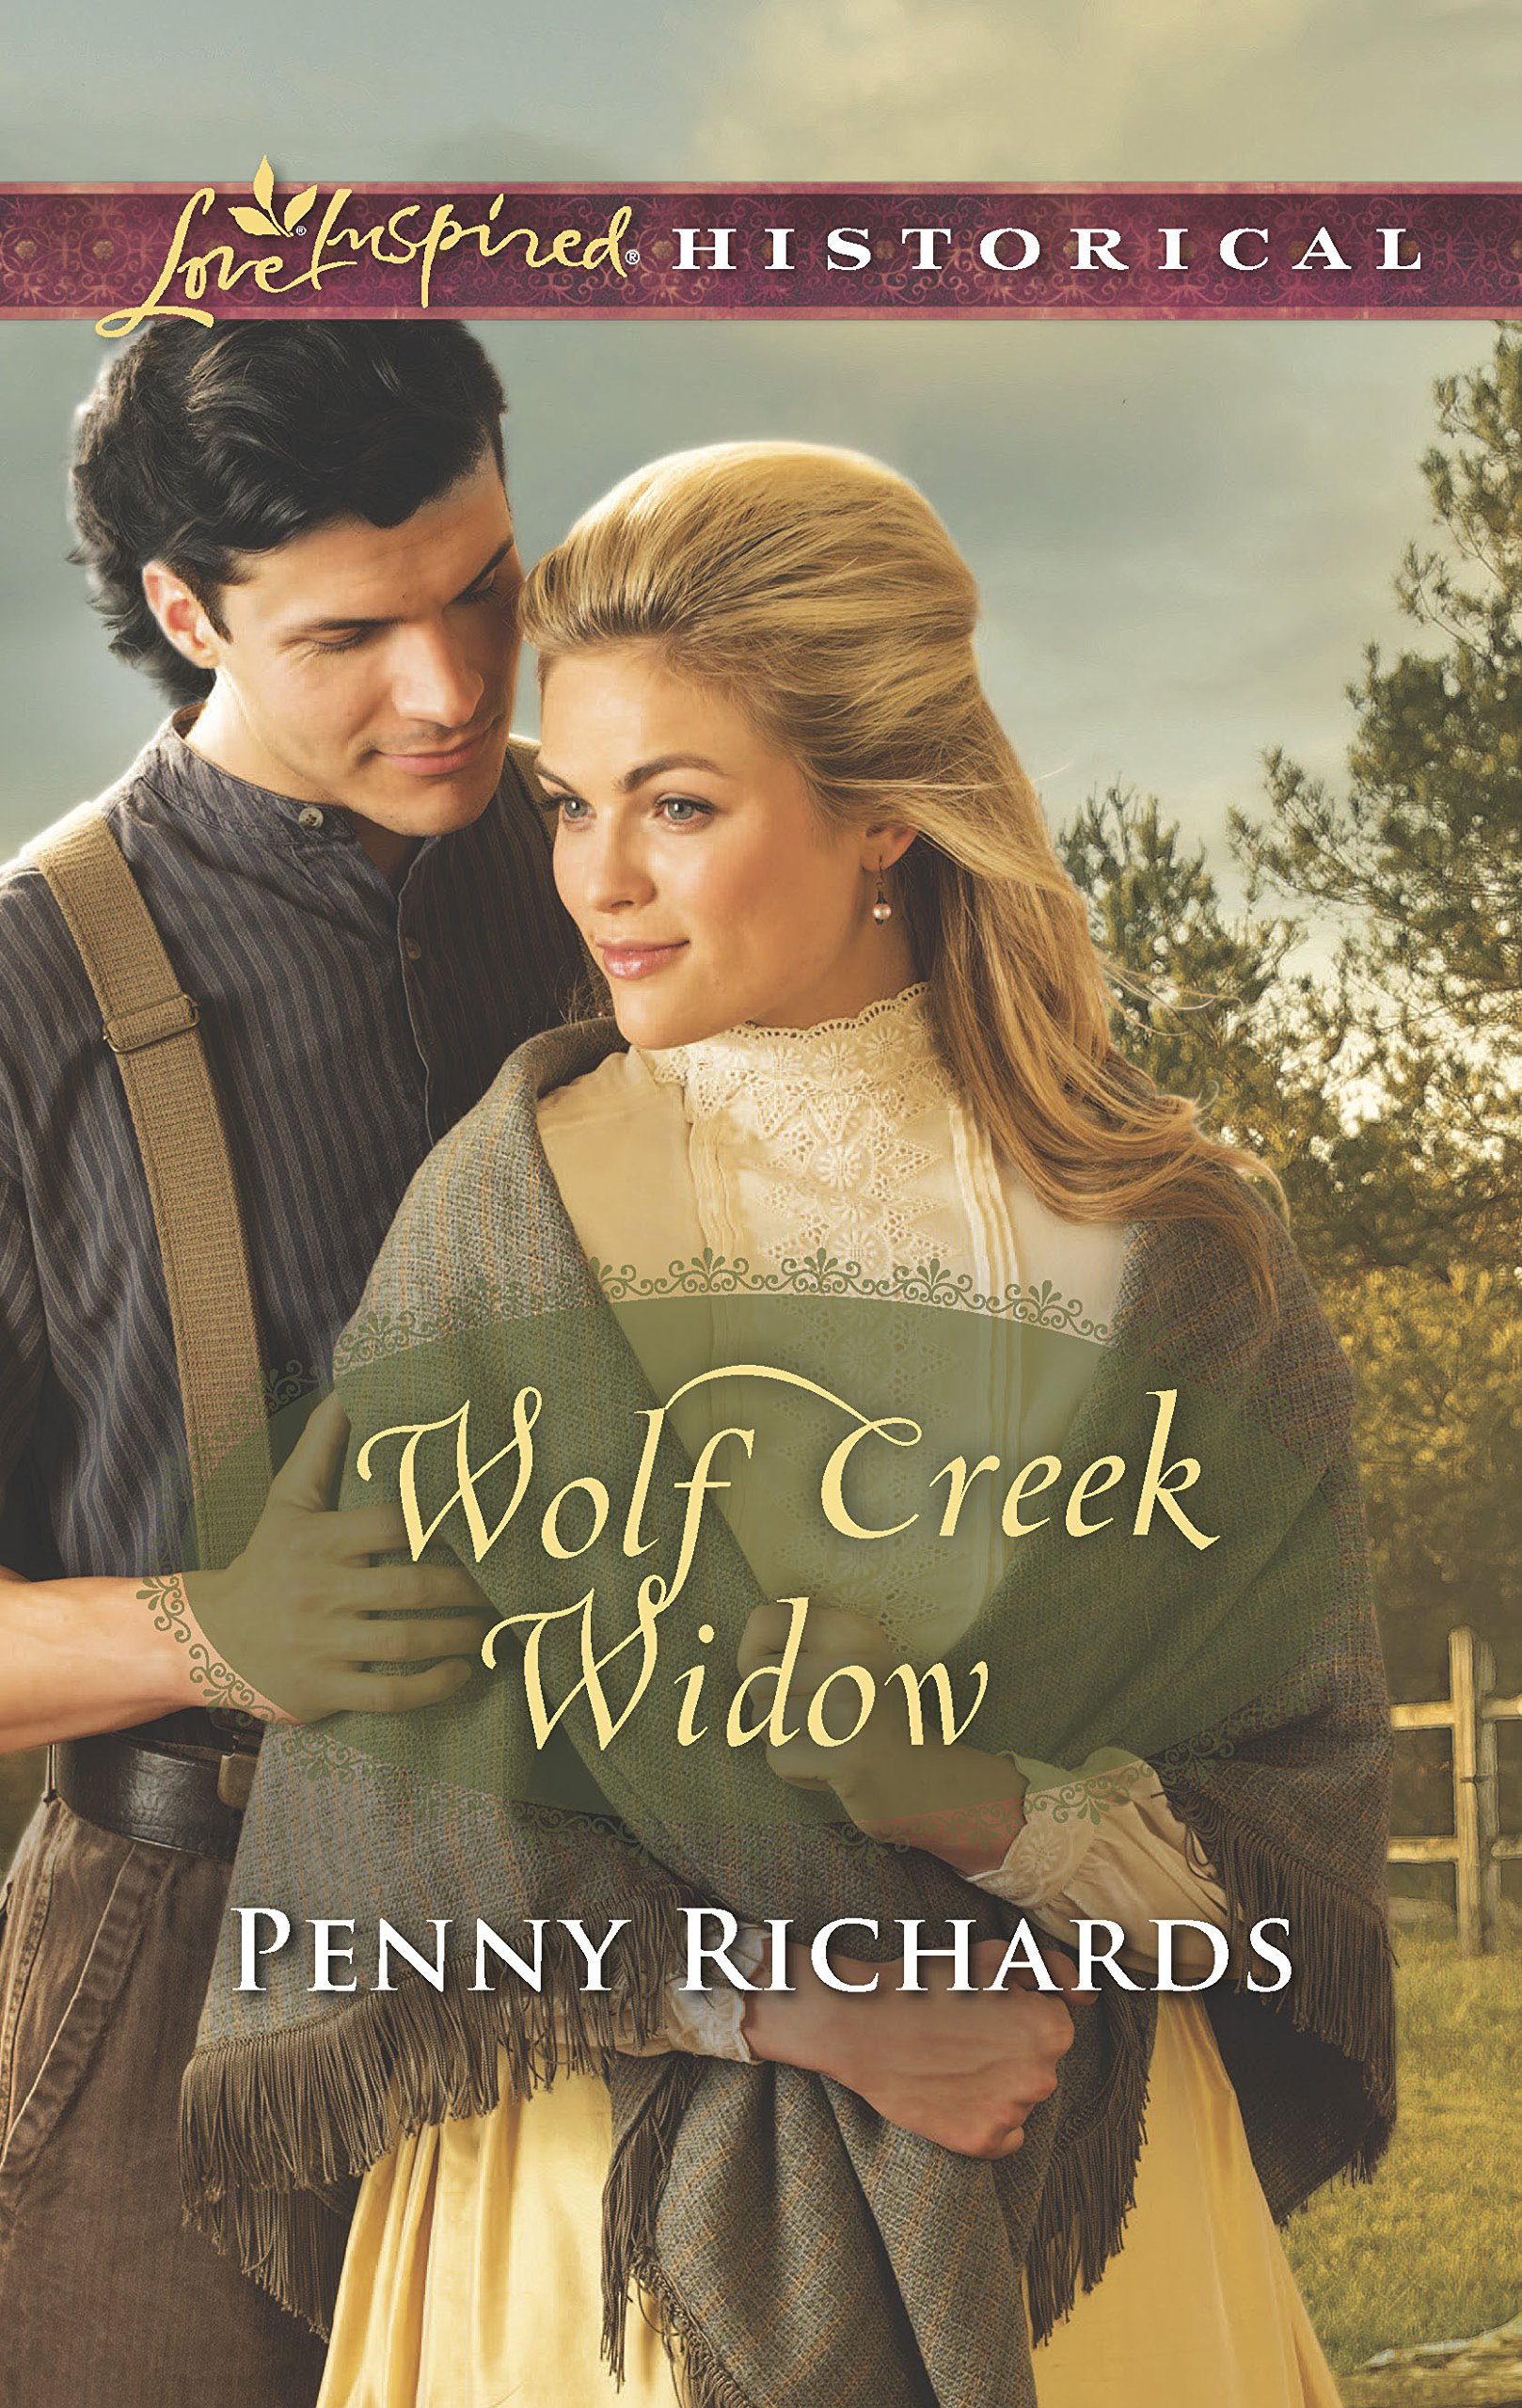 Wolf Creek Widow (Love Inspired Historical)